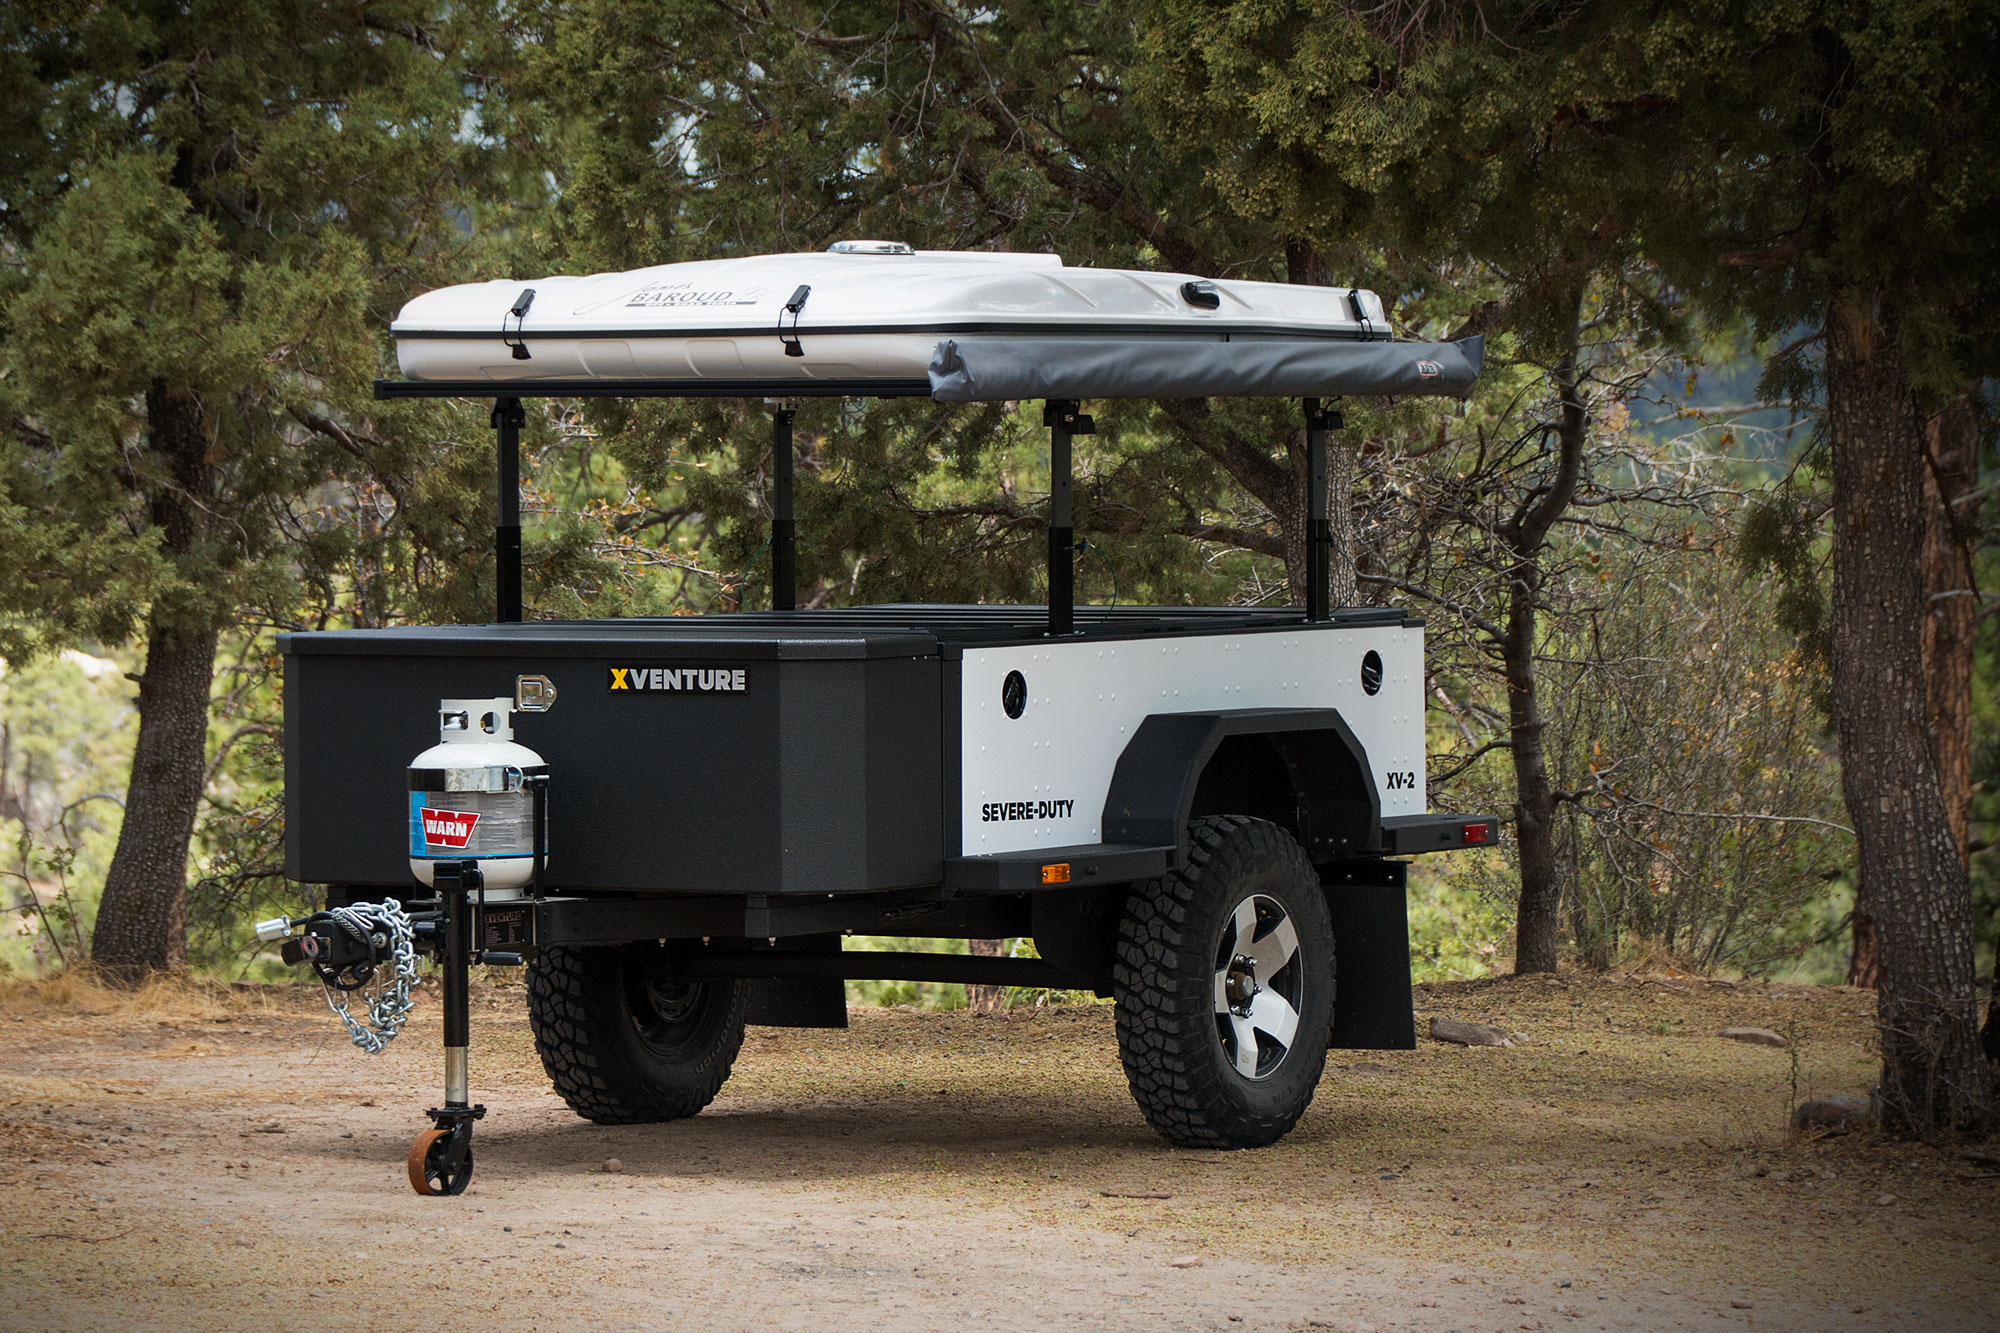 Xventure Xv 2 Expedition Portal